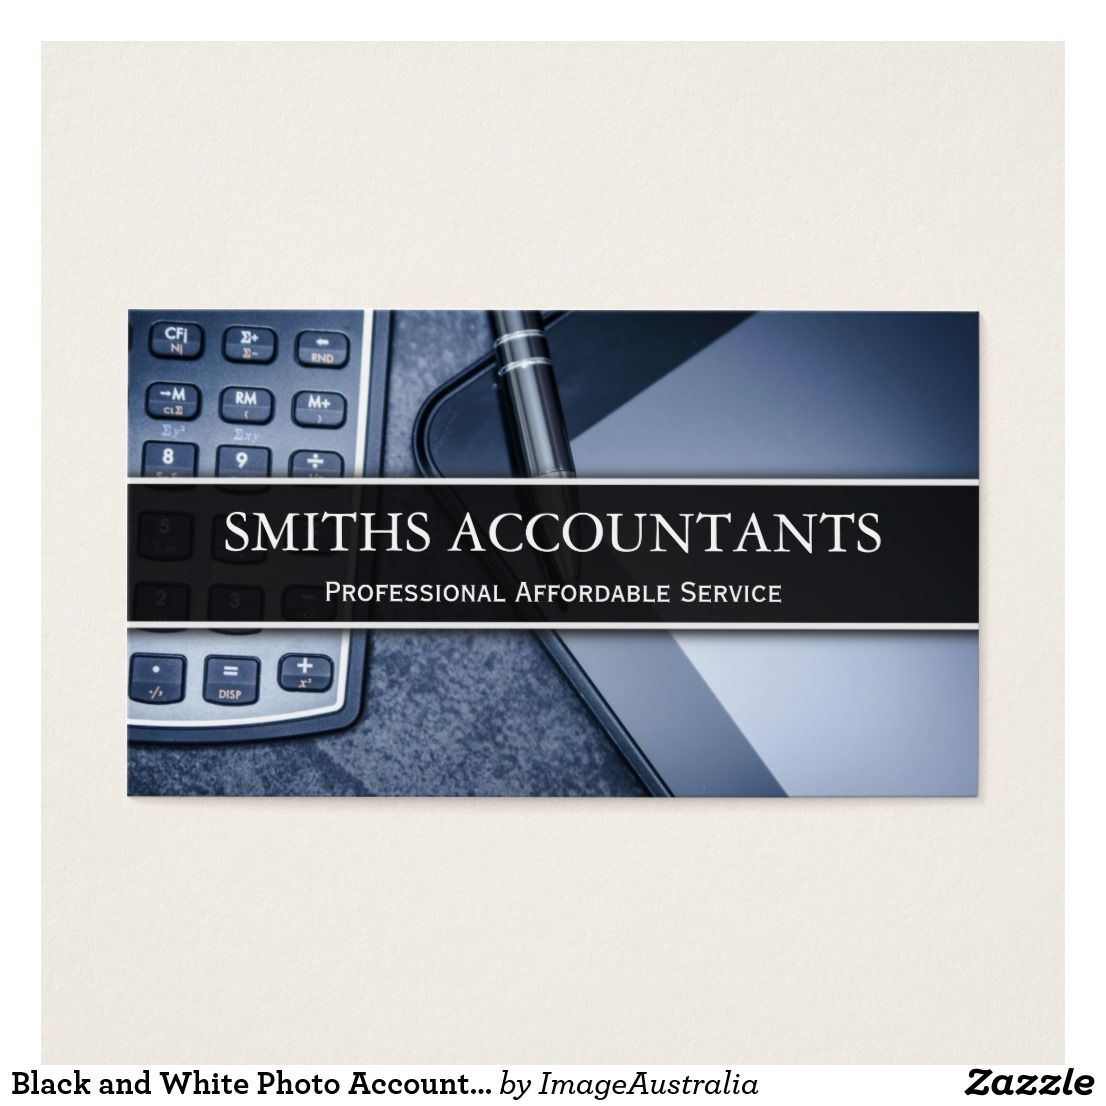 Black and White Photo Accountant - Business Card Custom Check out ...